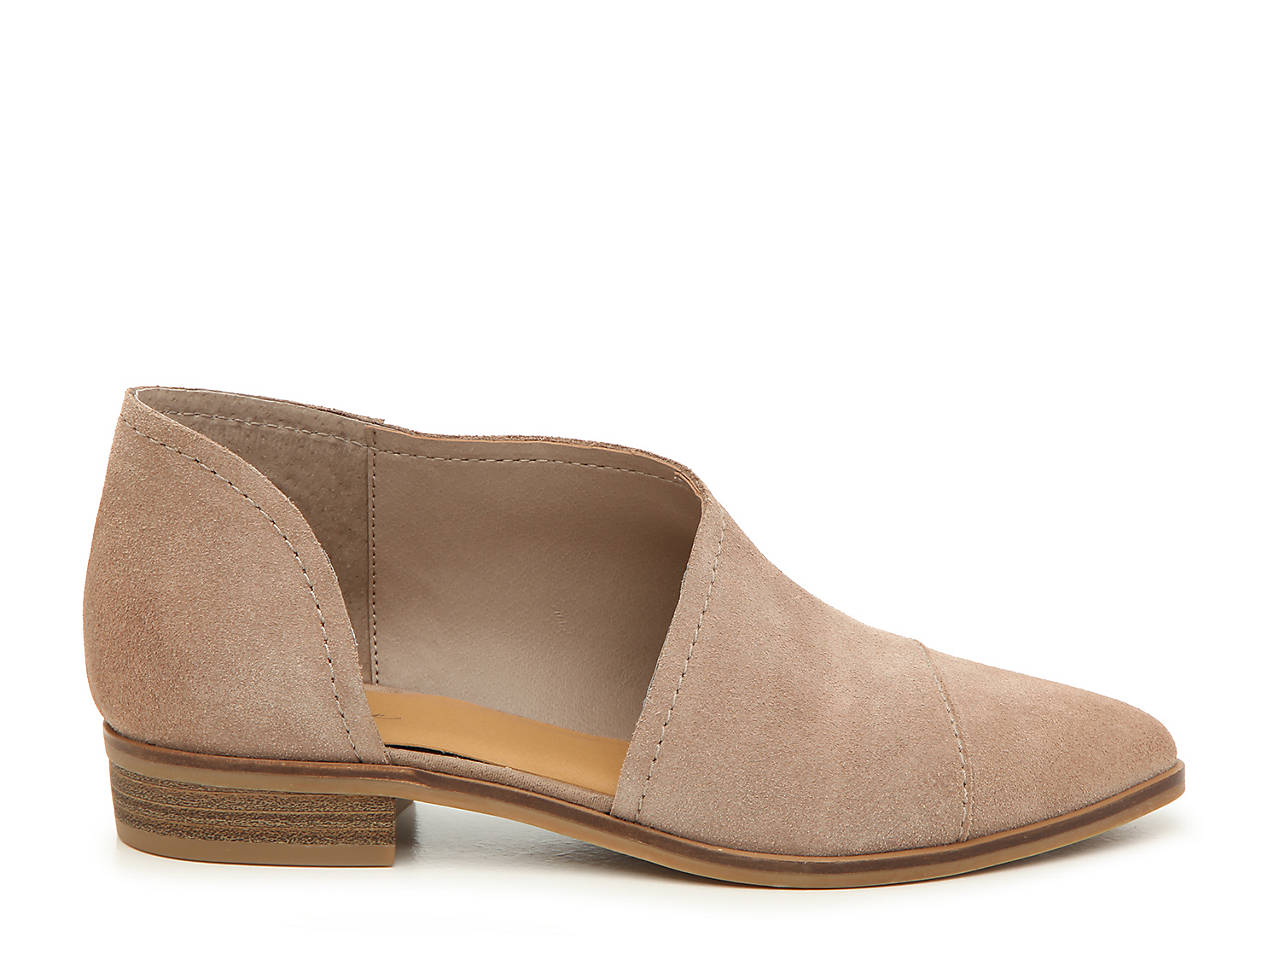 5c82ecb4b0e6 Home · Women's Shoes · Flats; Shay Bootie. previous. Shay Bootie. next